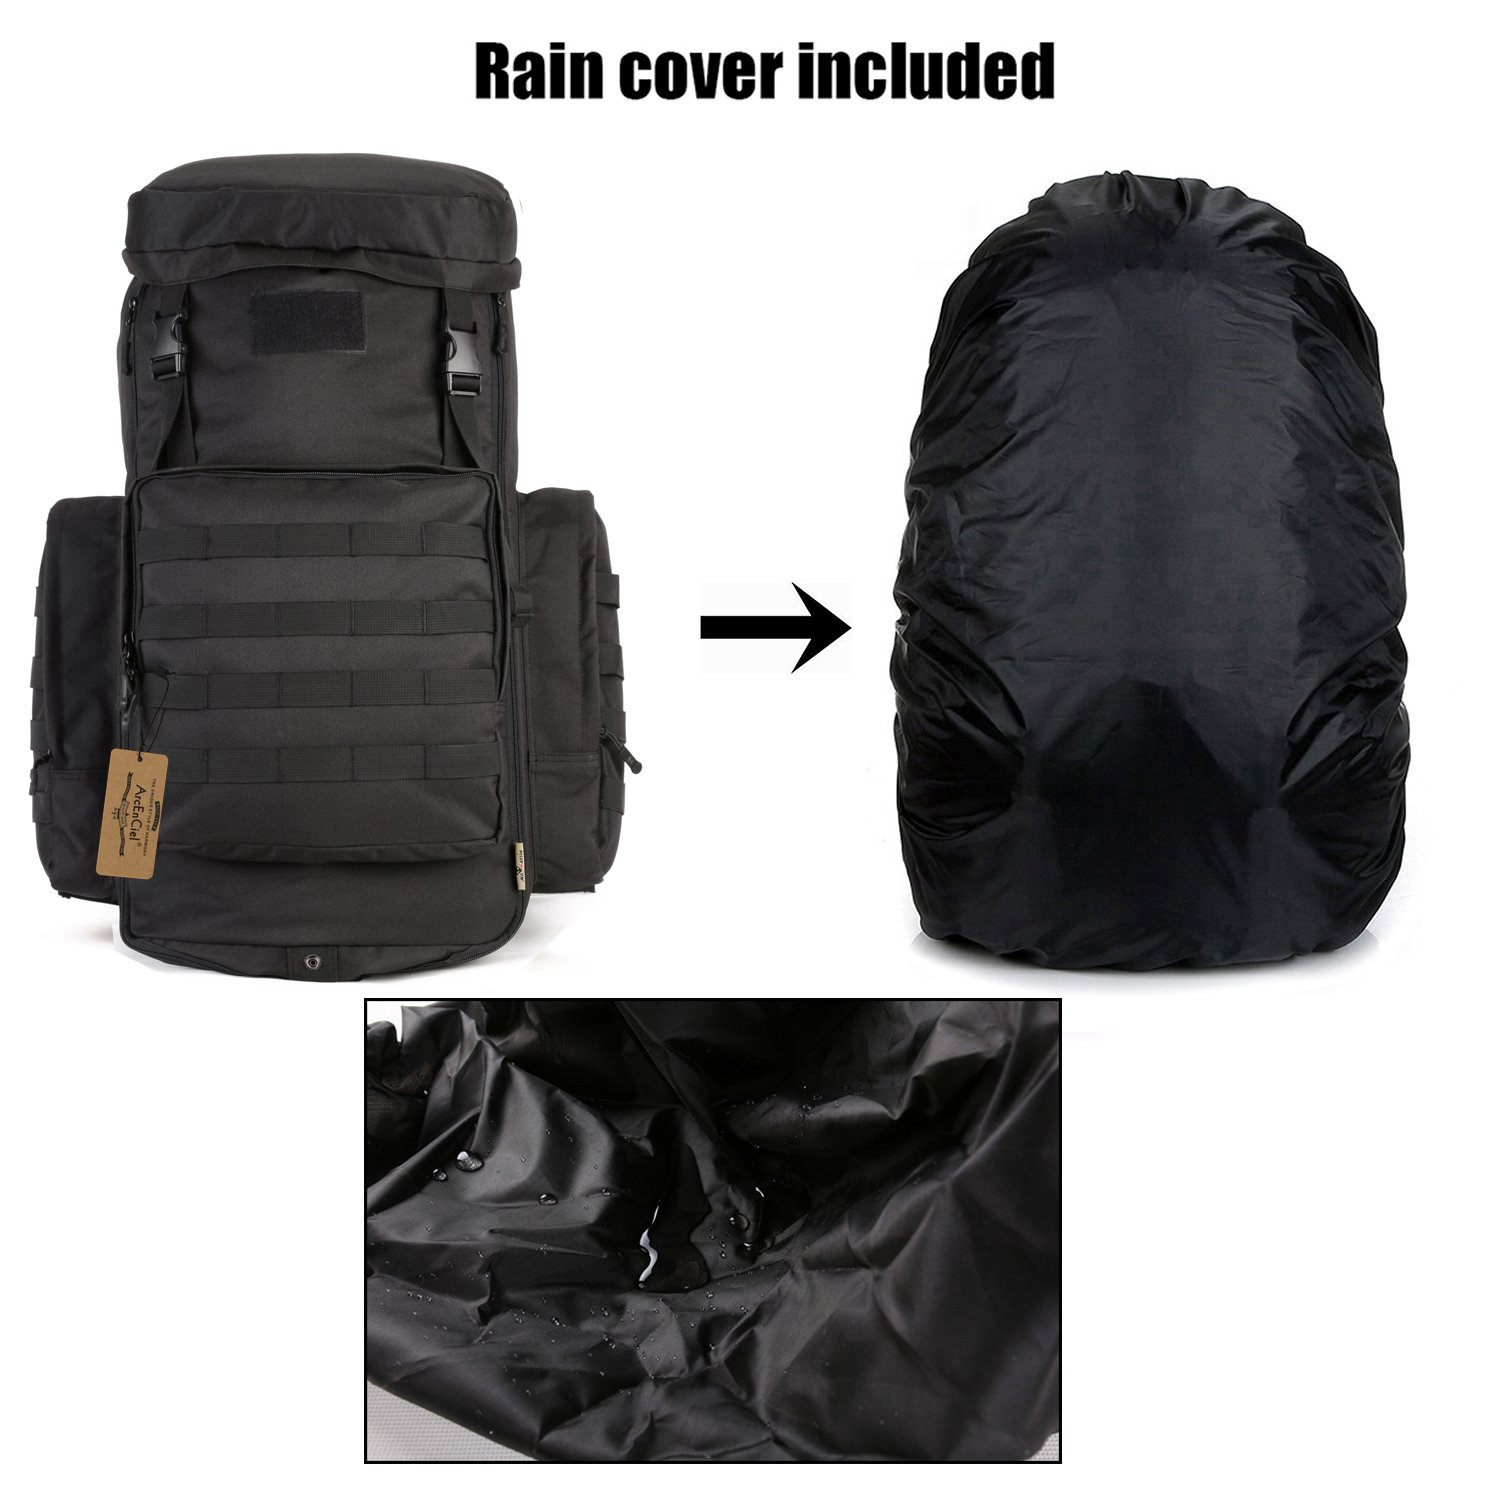 ArcEnCiel 70-85L Large Capacity Tactical Travel Backpack MOLLE Rucksack Outdoor Travel Bag for Travelling Trekking Camping Hiking Hunting -Rain Cover Included (Black) by ArcEnCiel (Image #5)